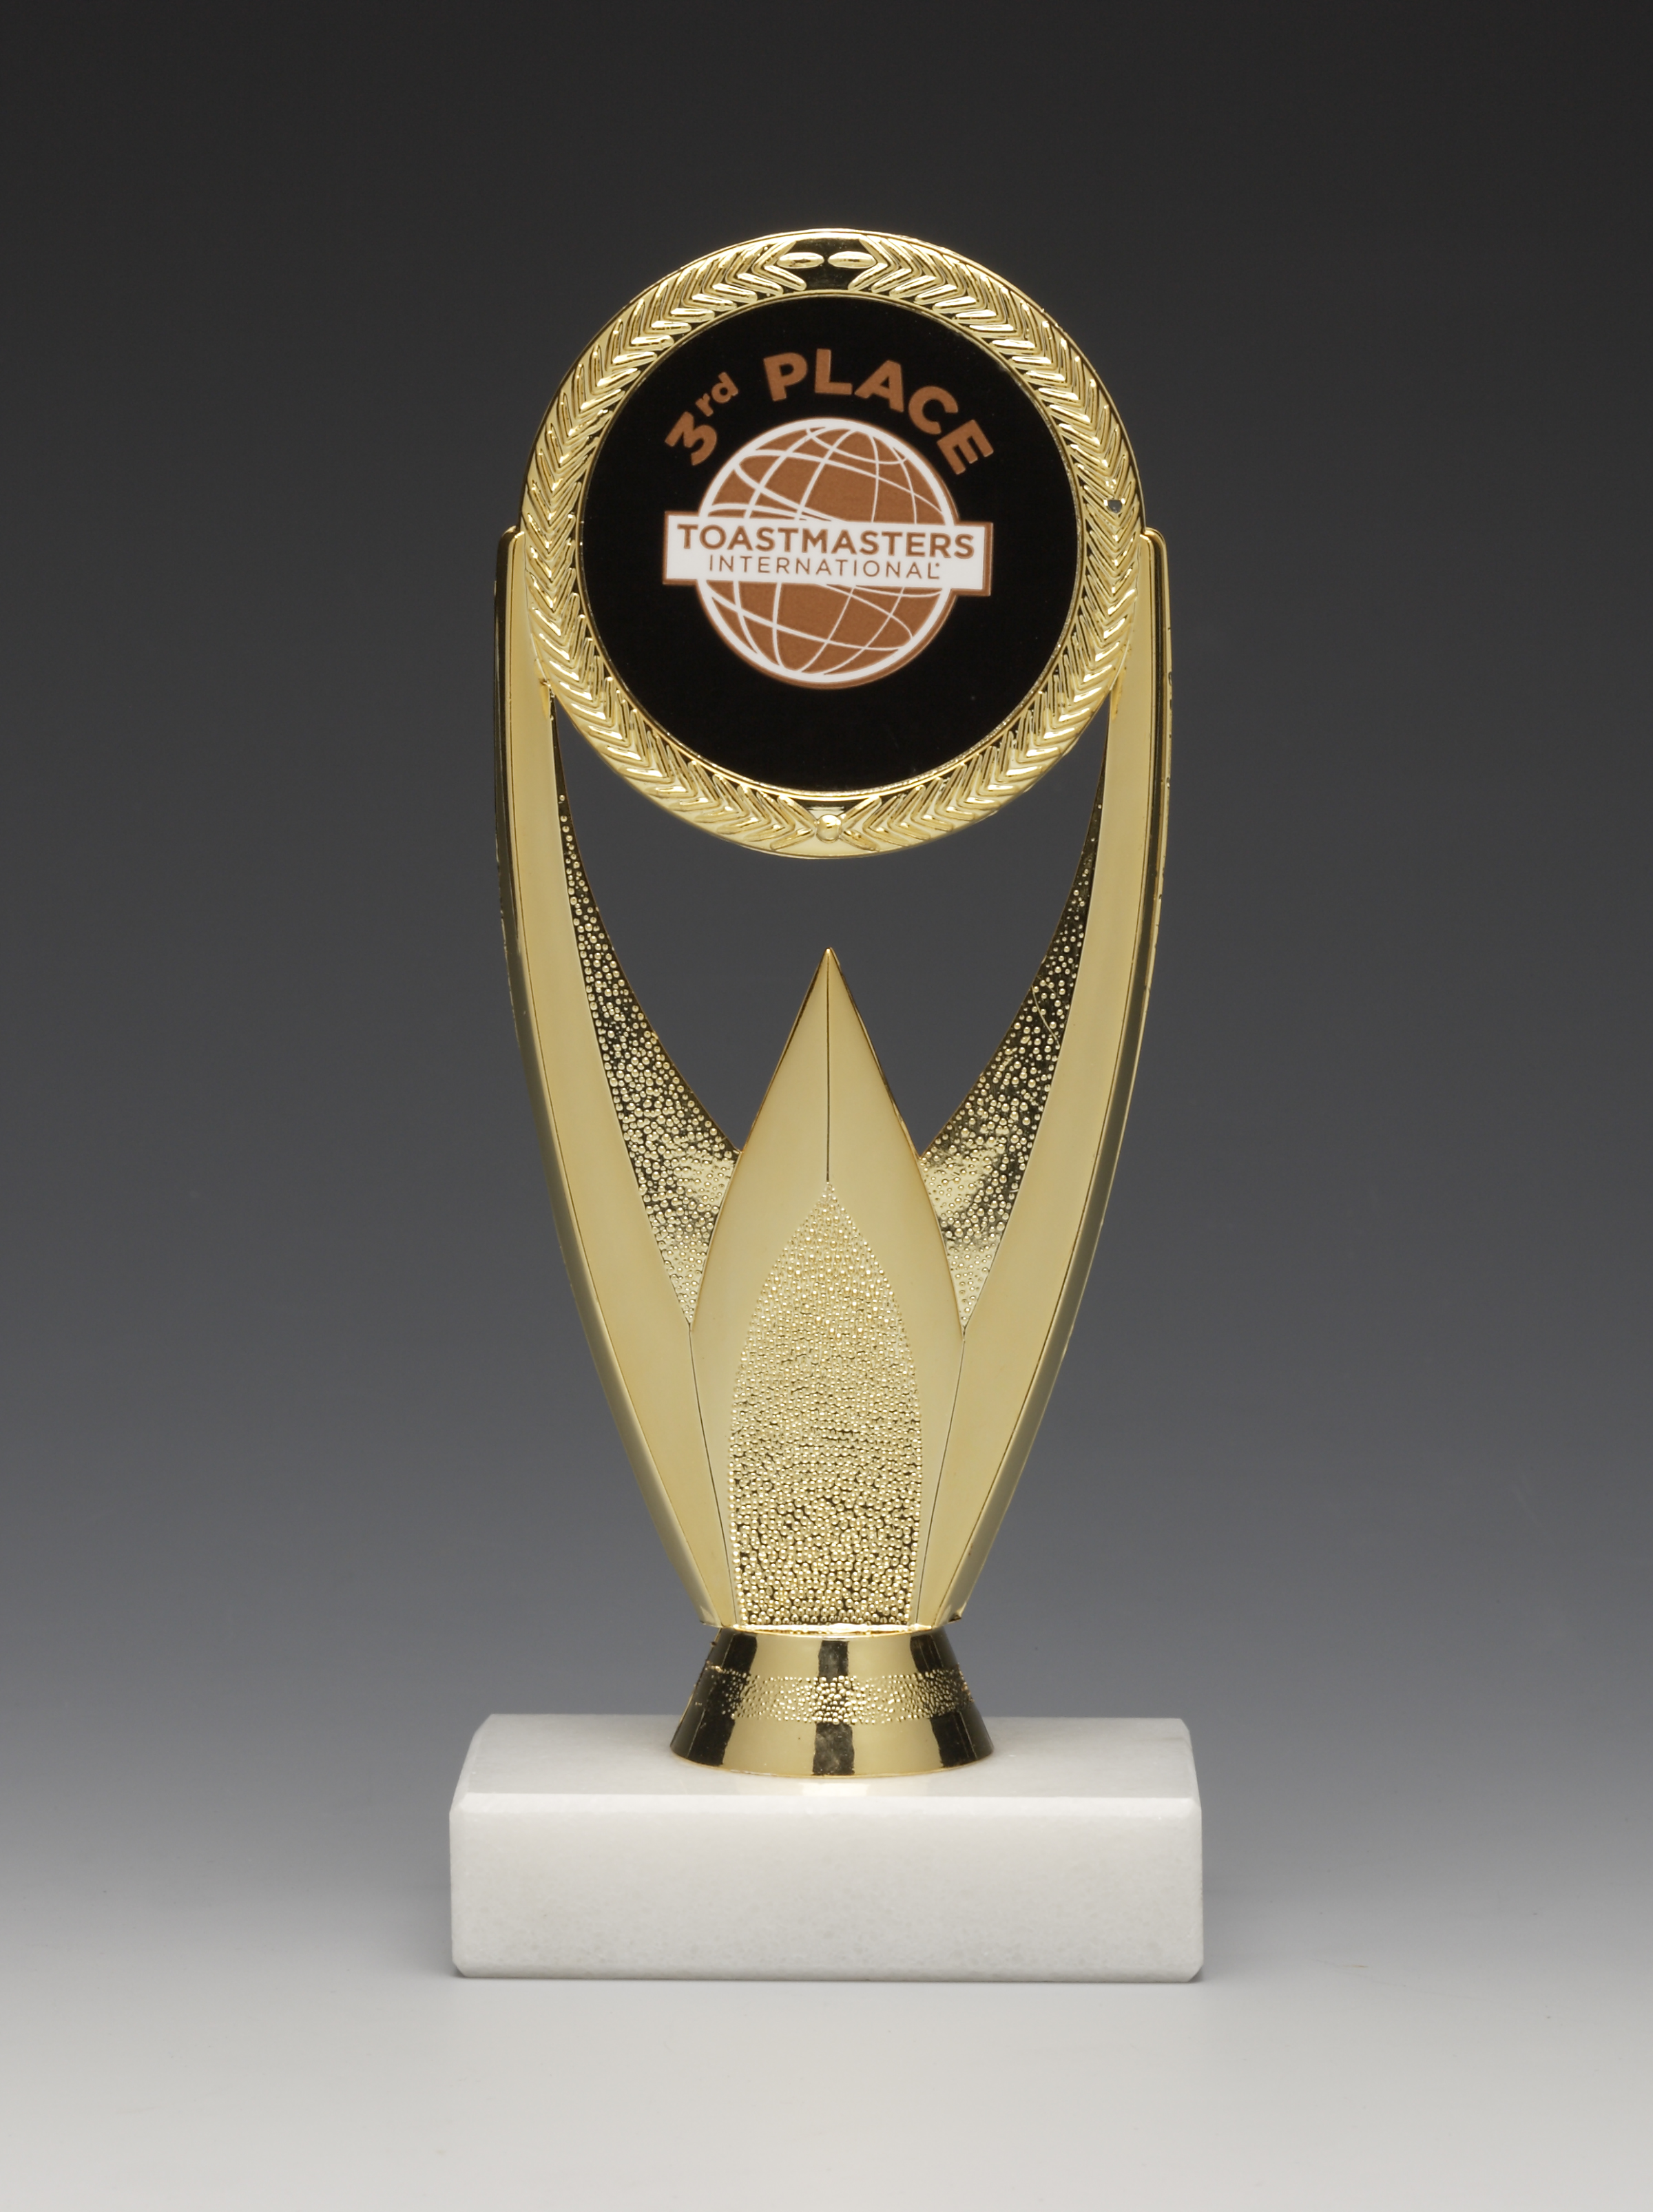 Oval Torch Award (3rd Place)